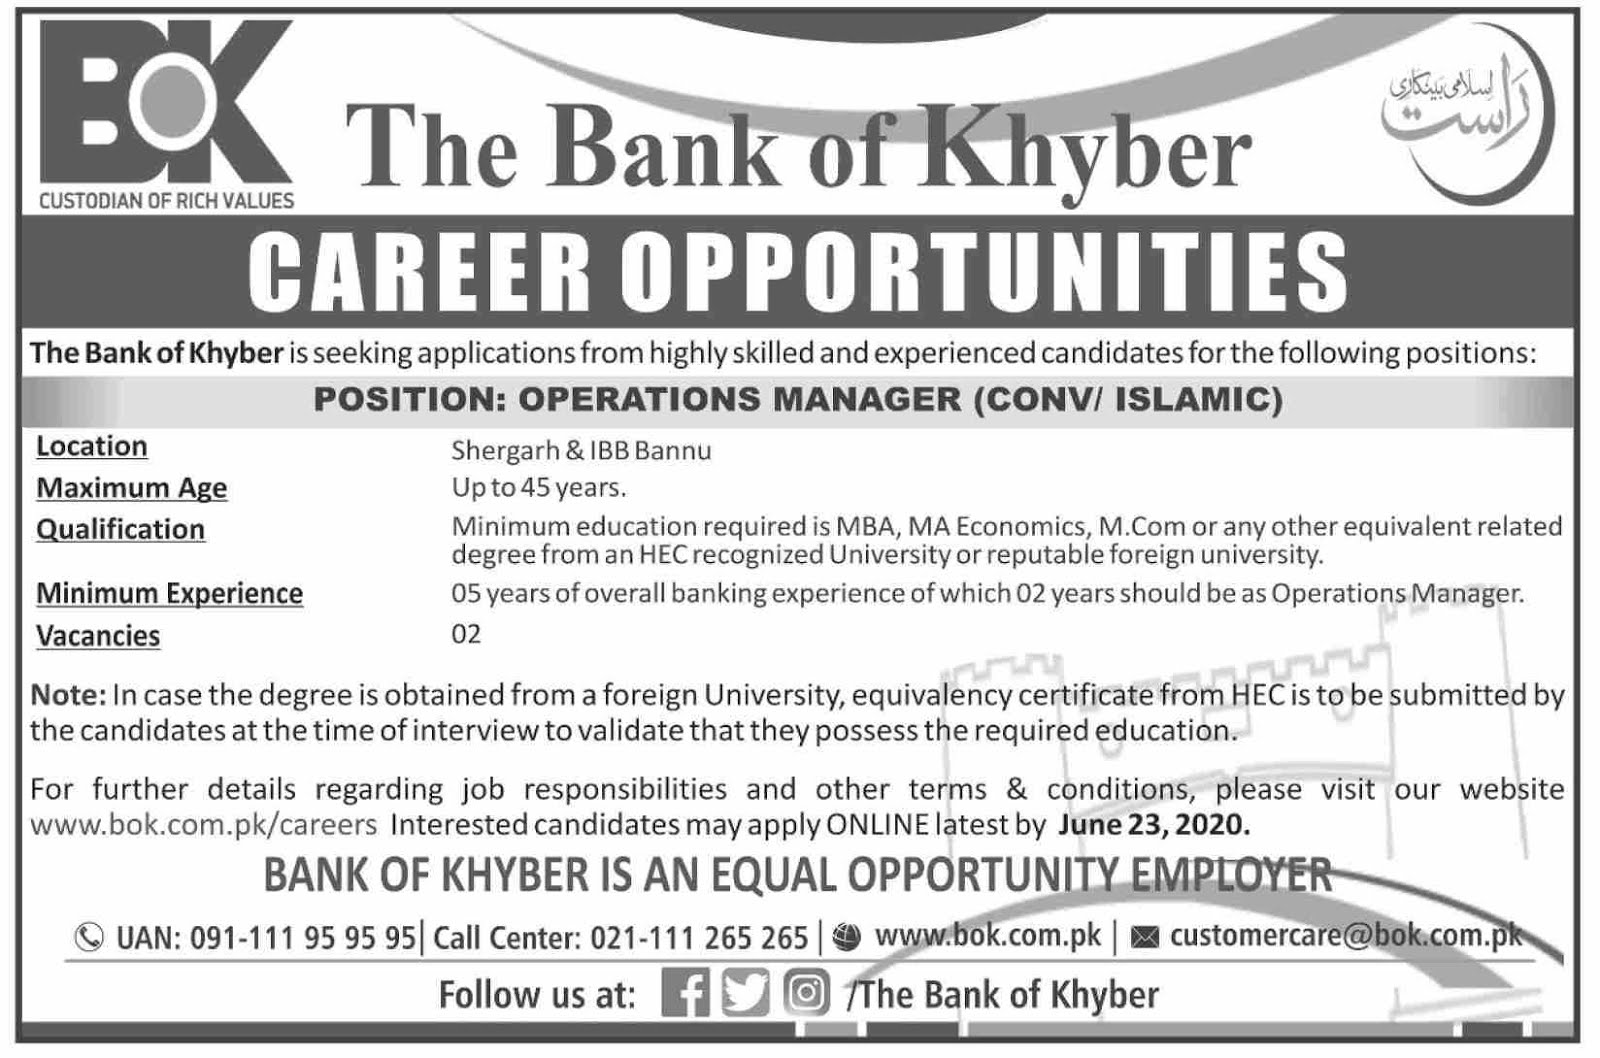 Operations Manager Jobs in The Bank of Khyber BOK in Bannu